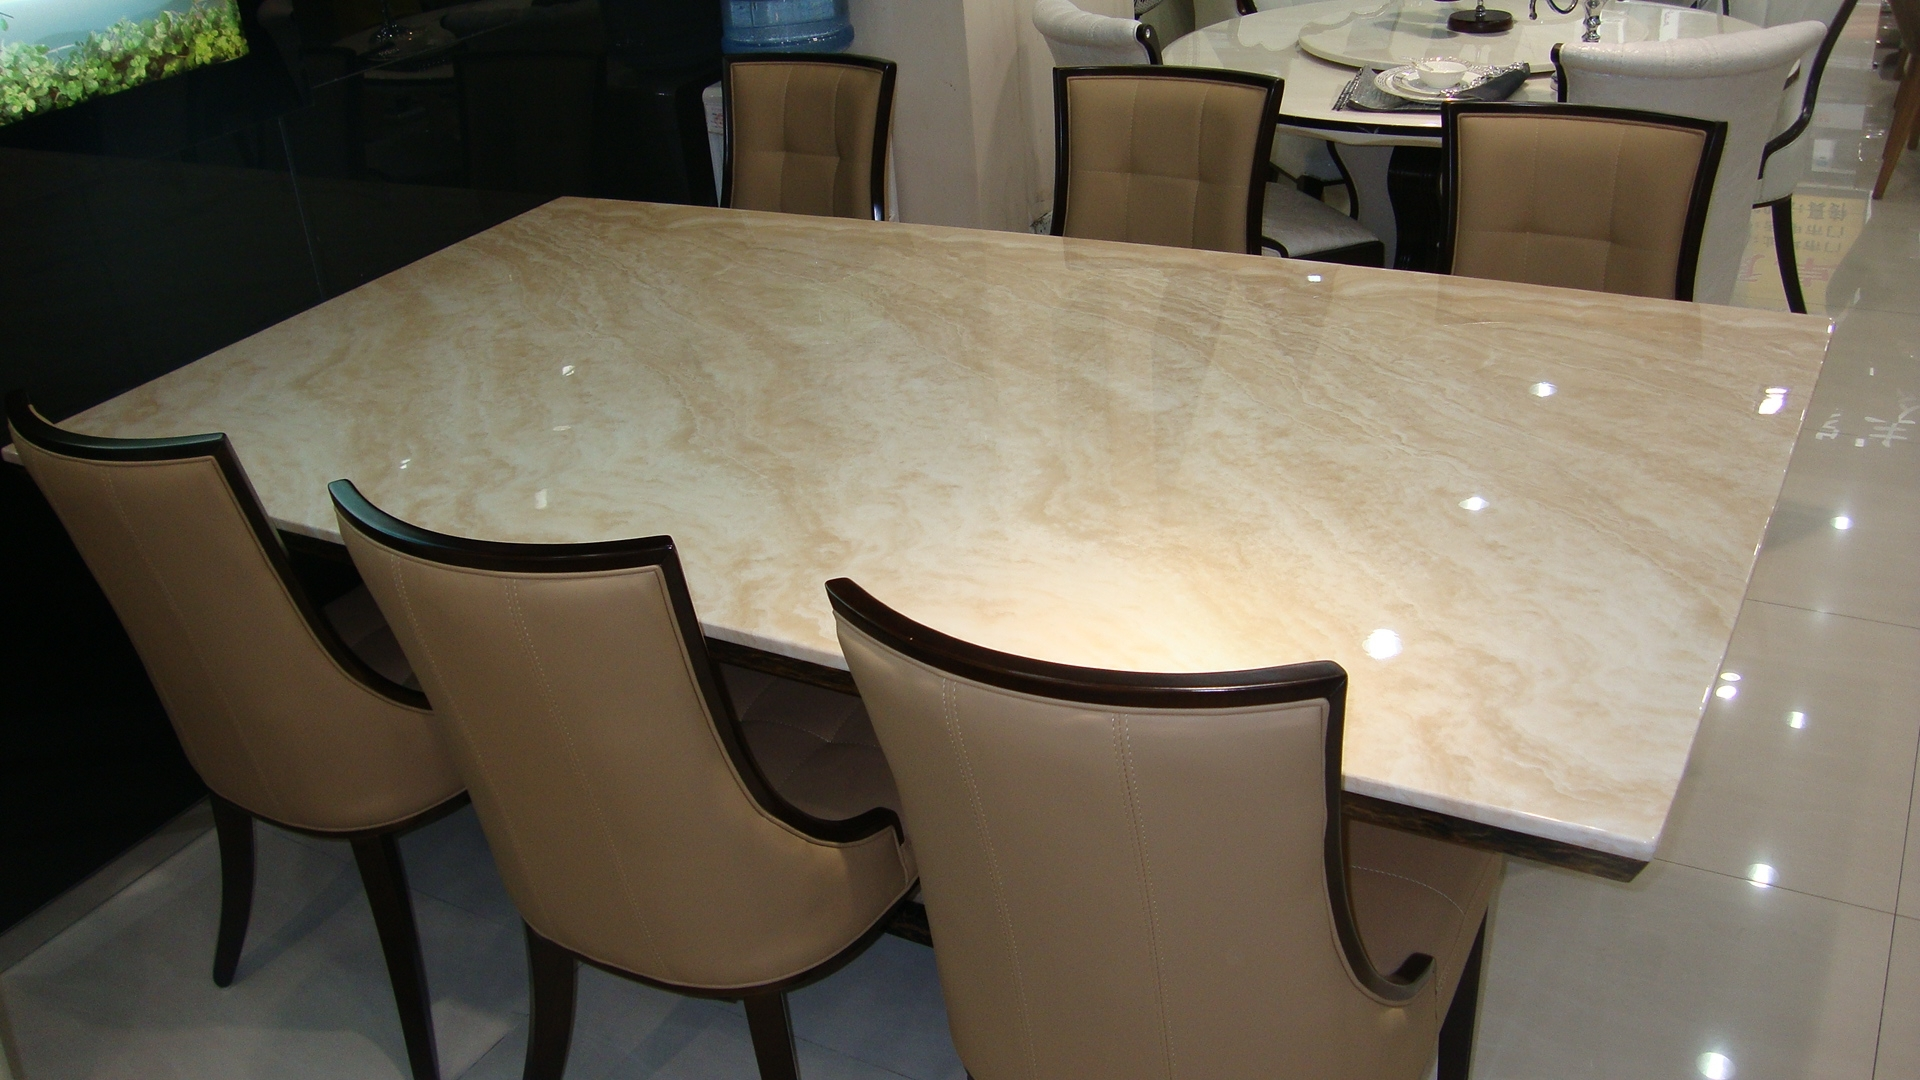 Marble King With Regard To Fashionable Dining Tables And 8 Chairs For Sale (View 19 of 25)